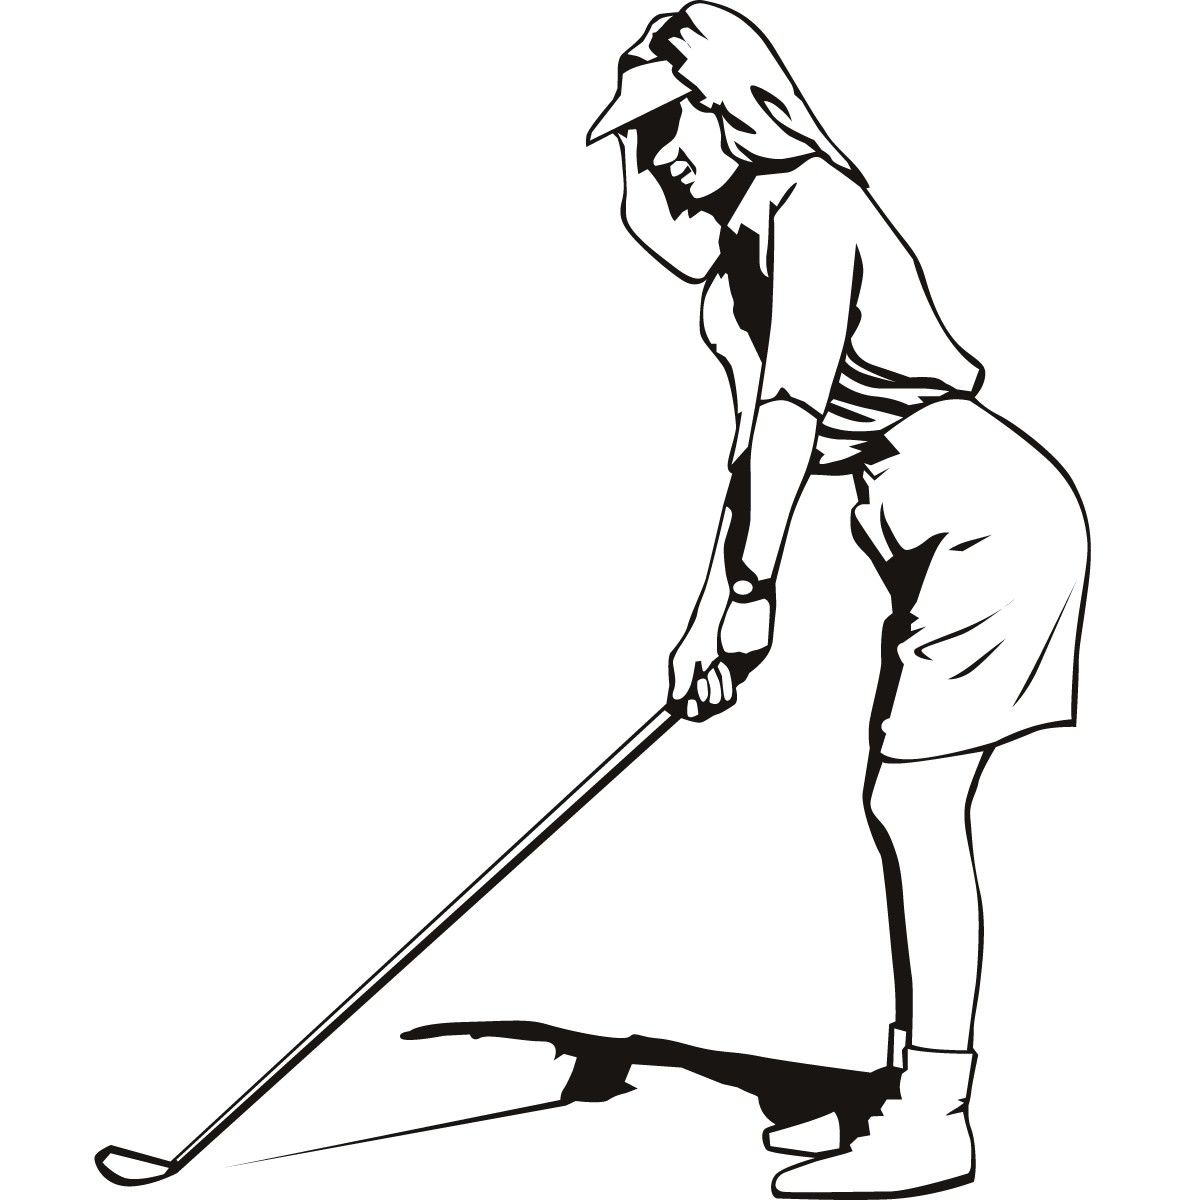 Free clipart ladies golf picture freeuse Free Female Golfer Cliparts, Download Free Clip Art, Free Clip Art ... picture freeuse